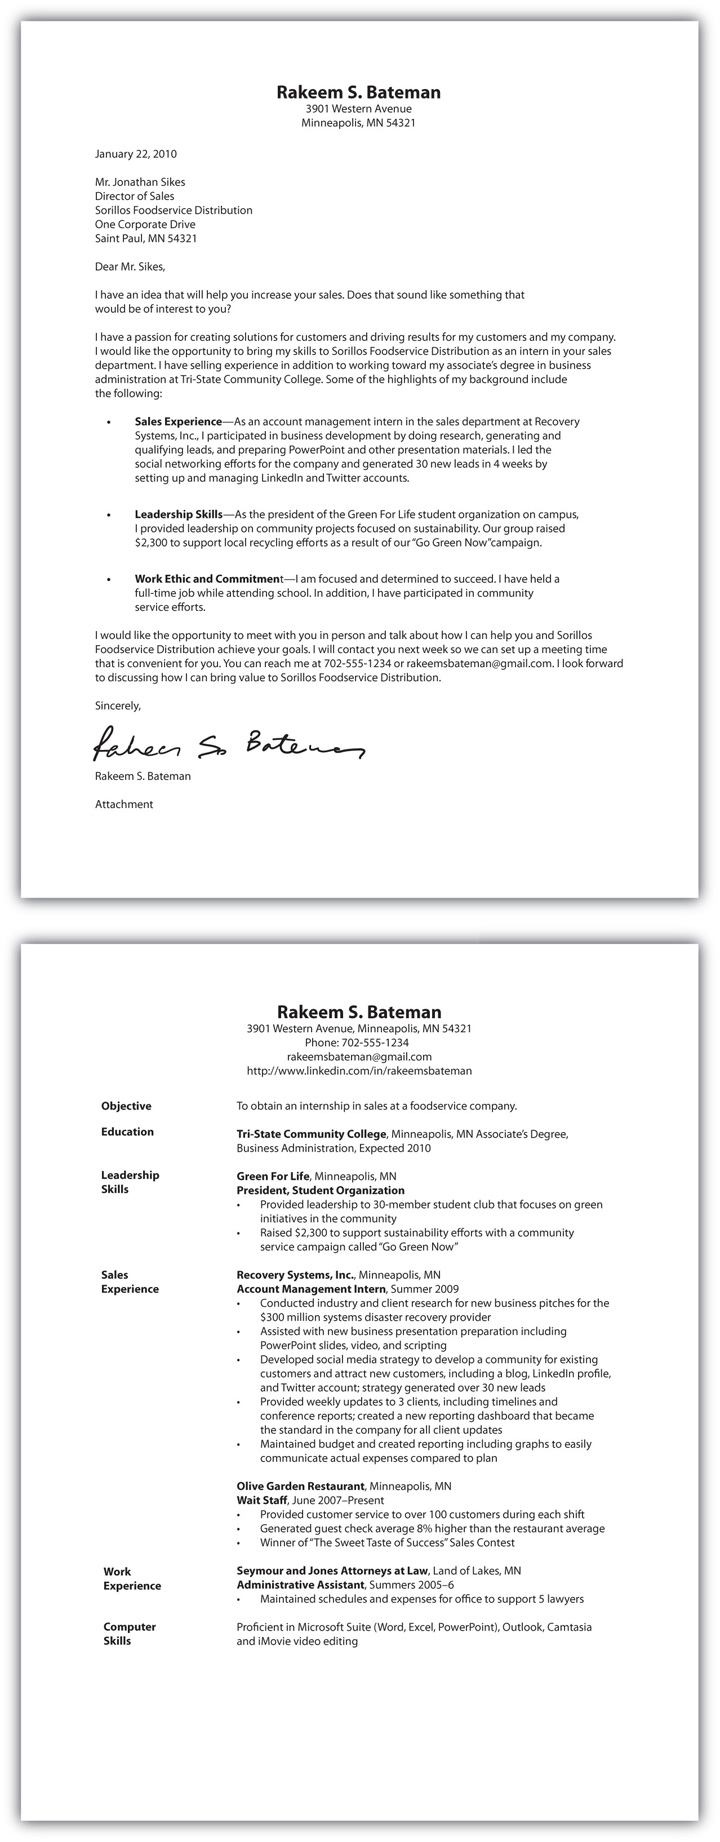 Killer Job Cover Letter   Sample Customer Service Resume Free Professional Resume Template